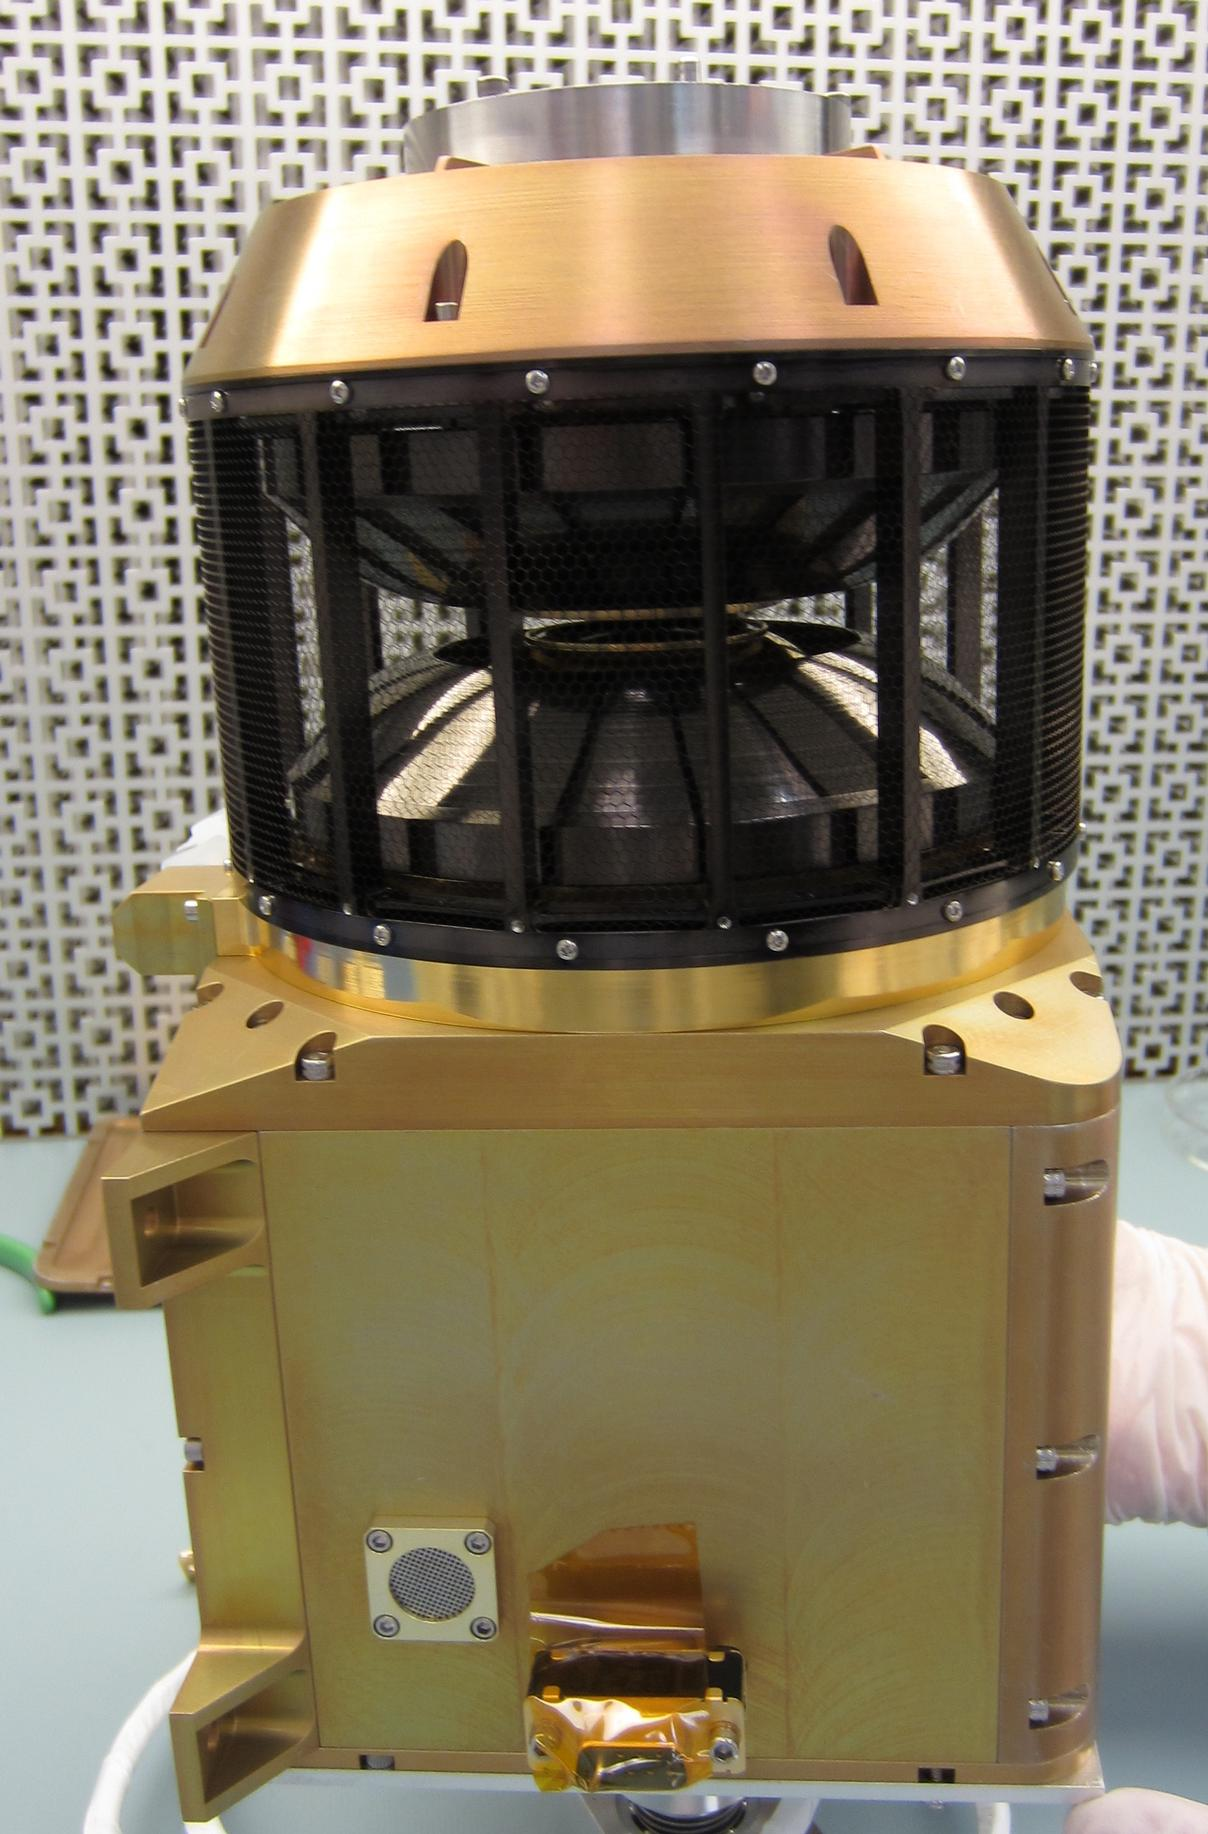 This image shows the wind analyzer instrument box that is yellow metal at the bottom, the top is a circular black cylinder.  The whole instrument is the size of a shoebox.